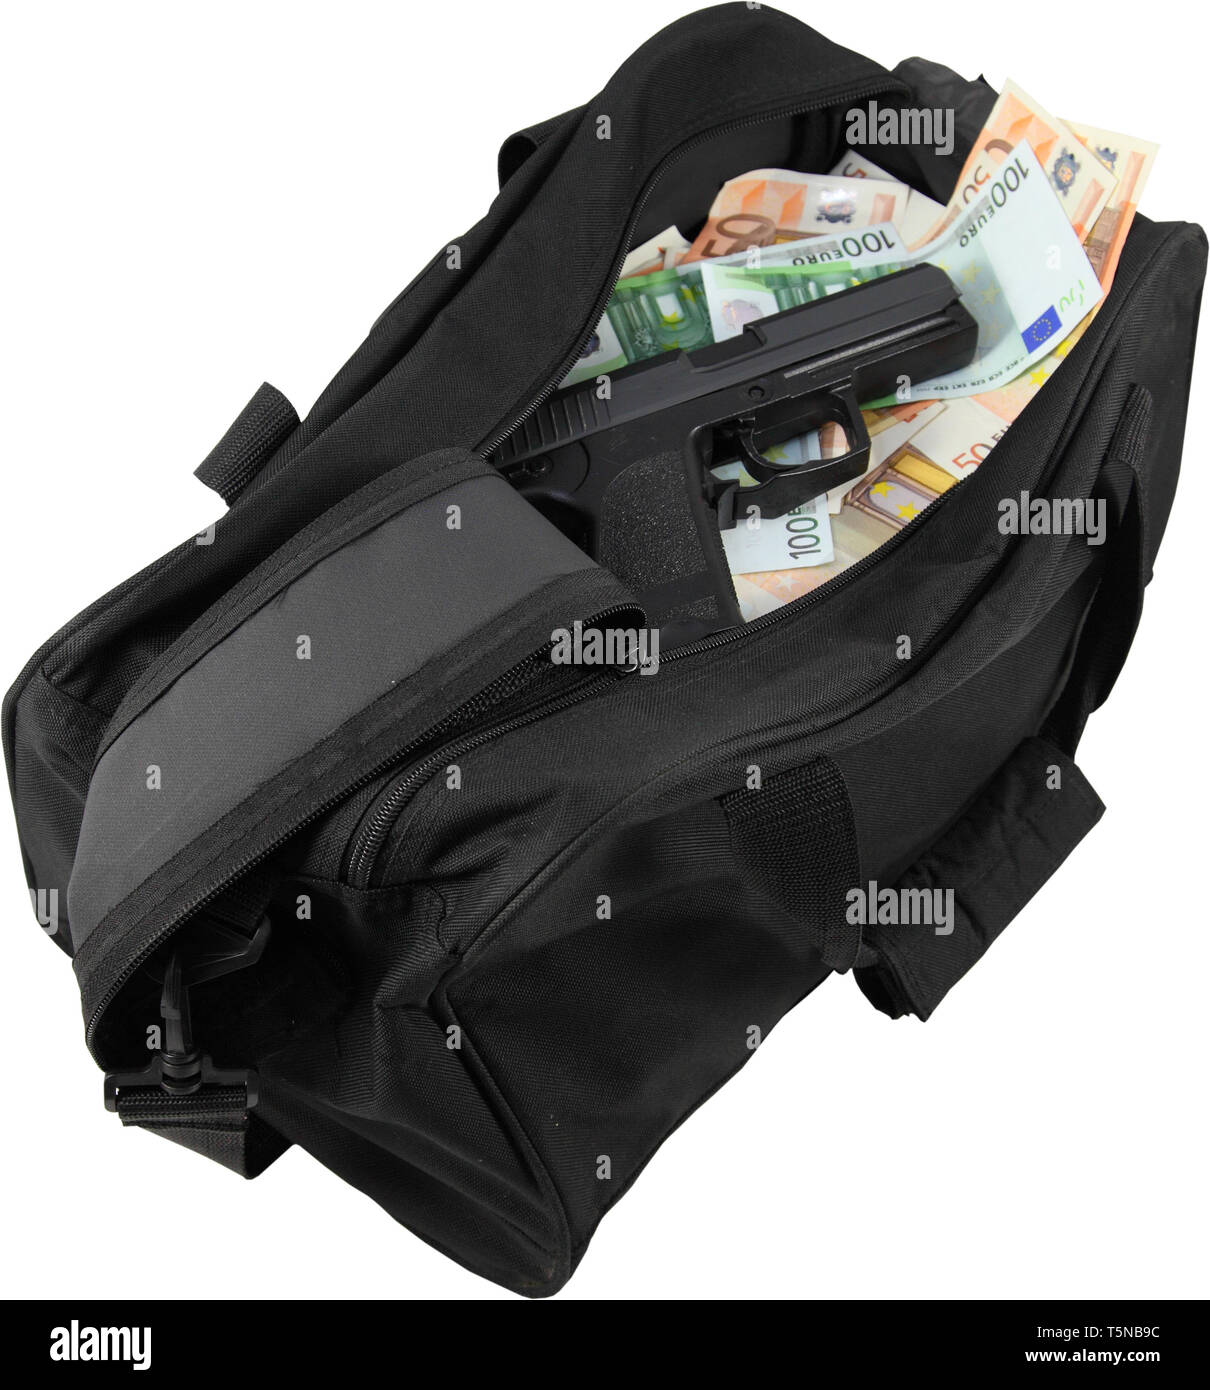 Loot from bank robbery. Sports bag full of money with gun - isolated - Stock Image